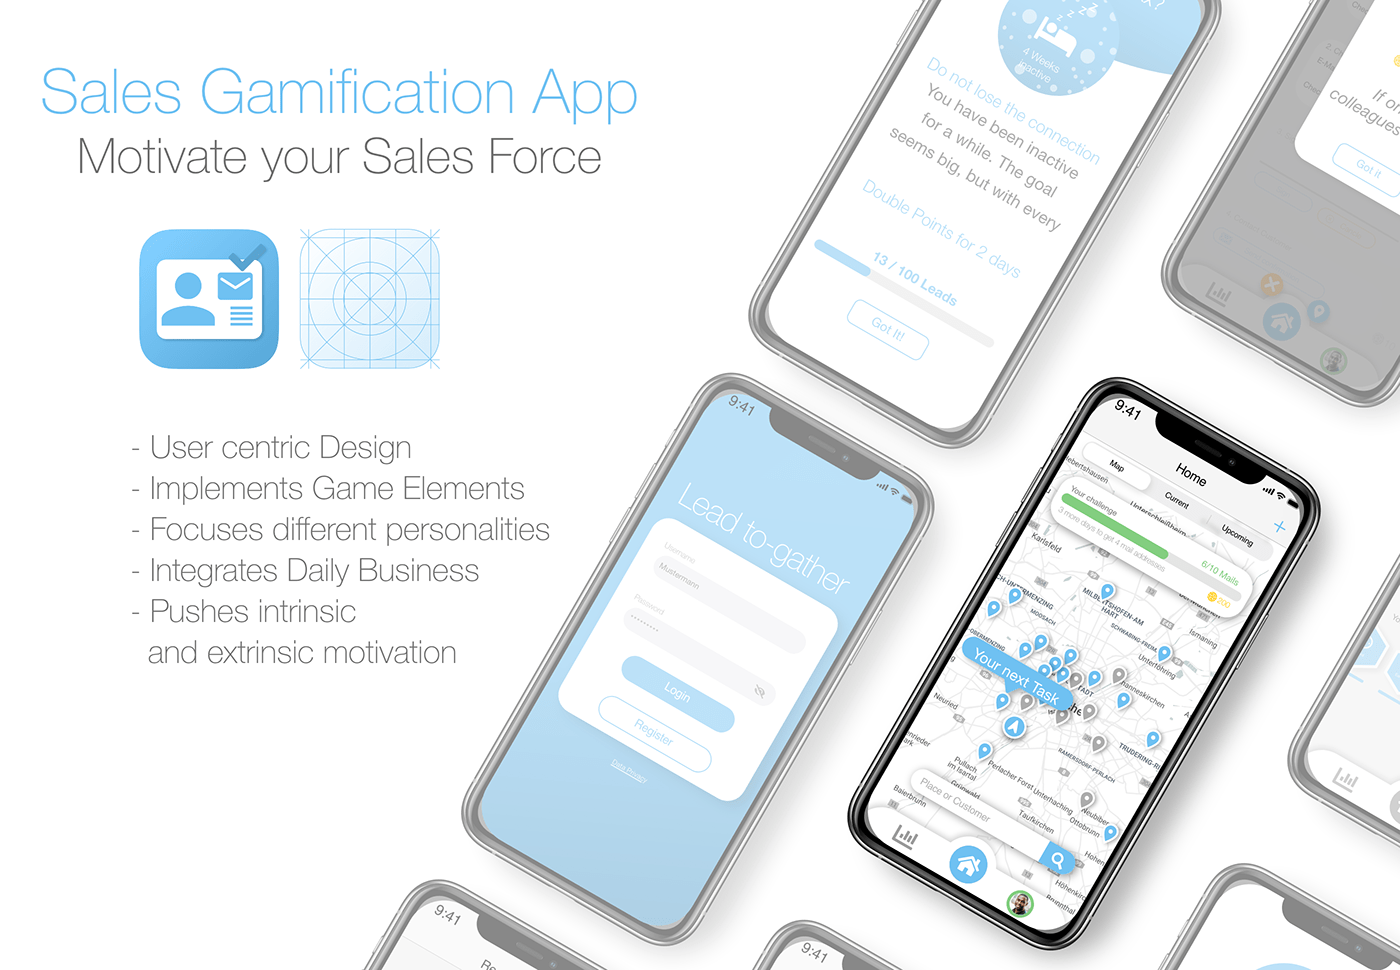 app b2b gamification ios mobile sales scientific paper thesis